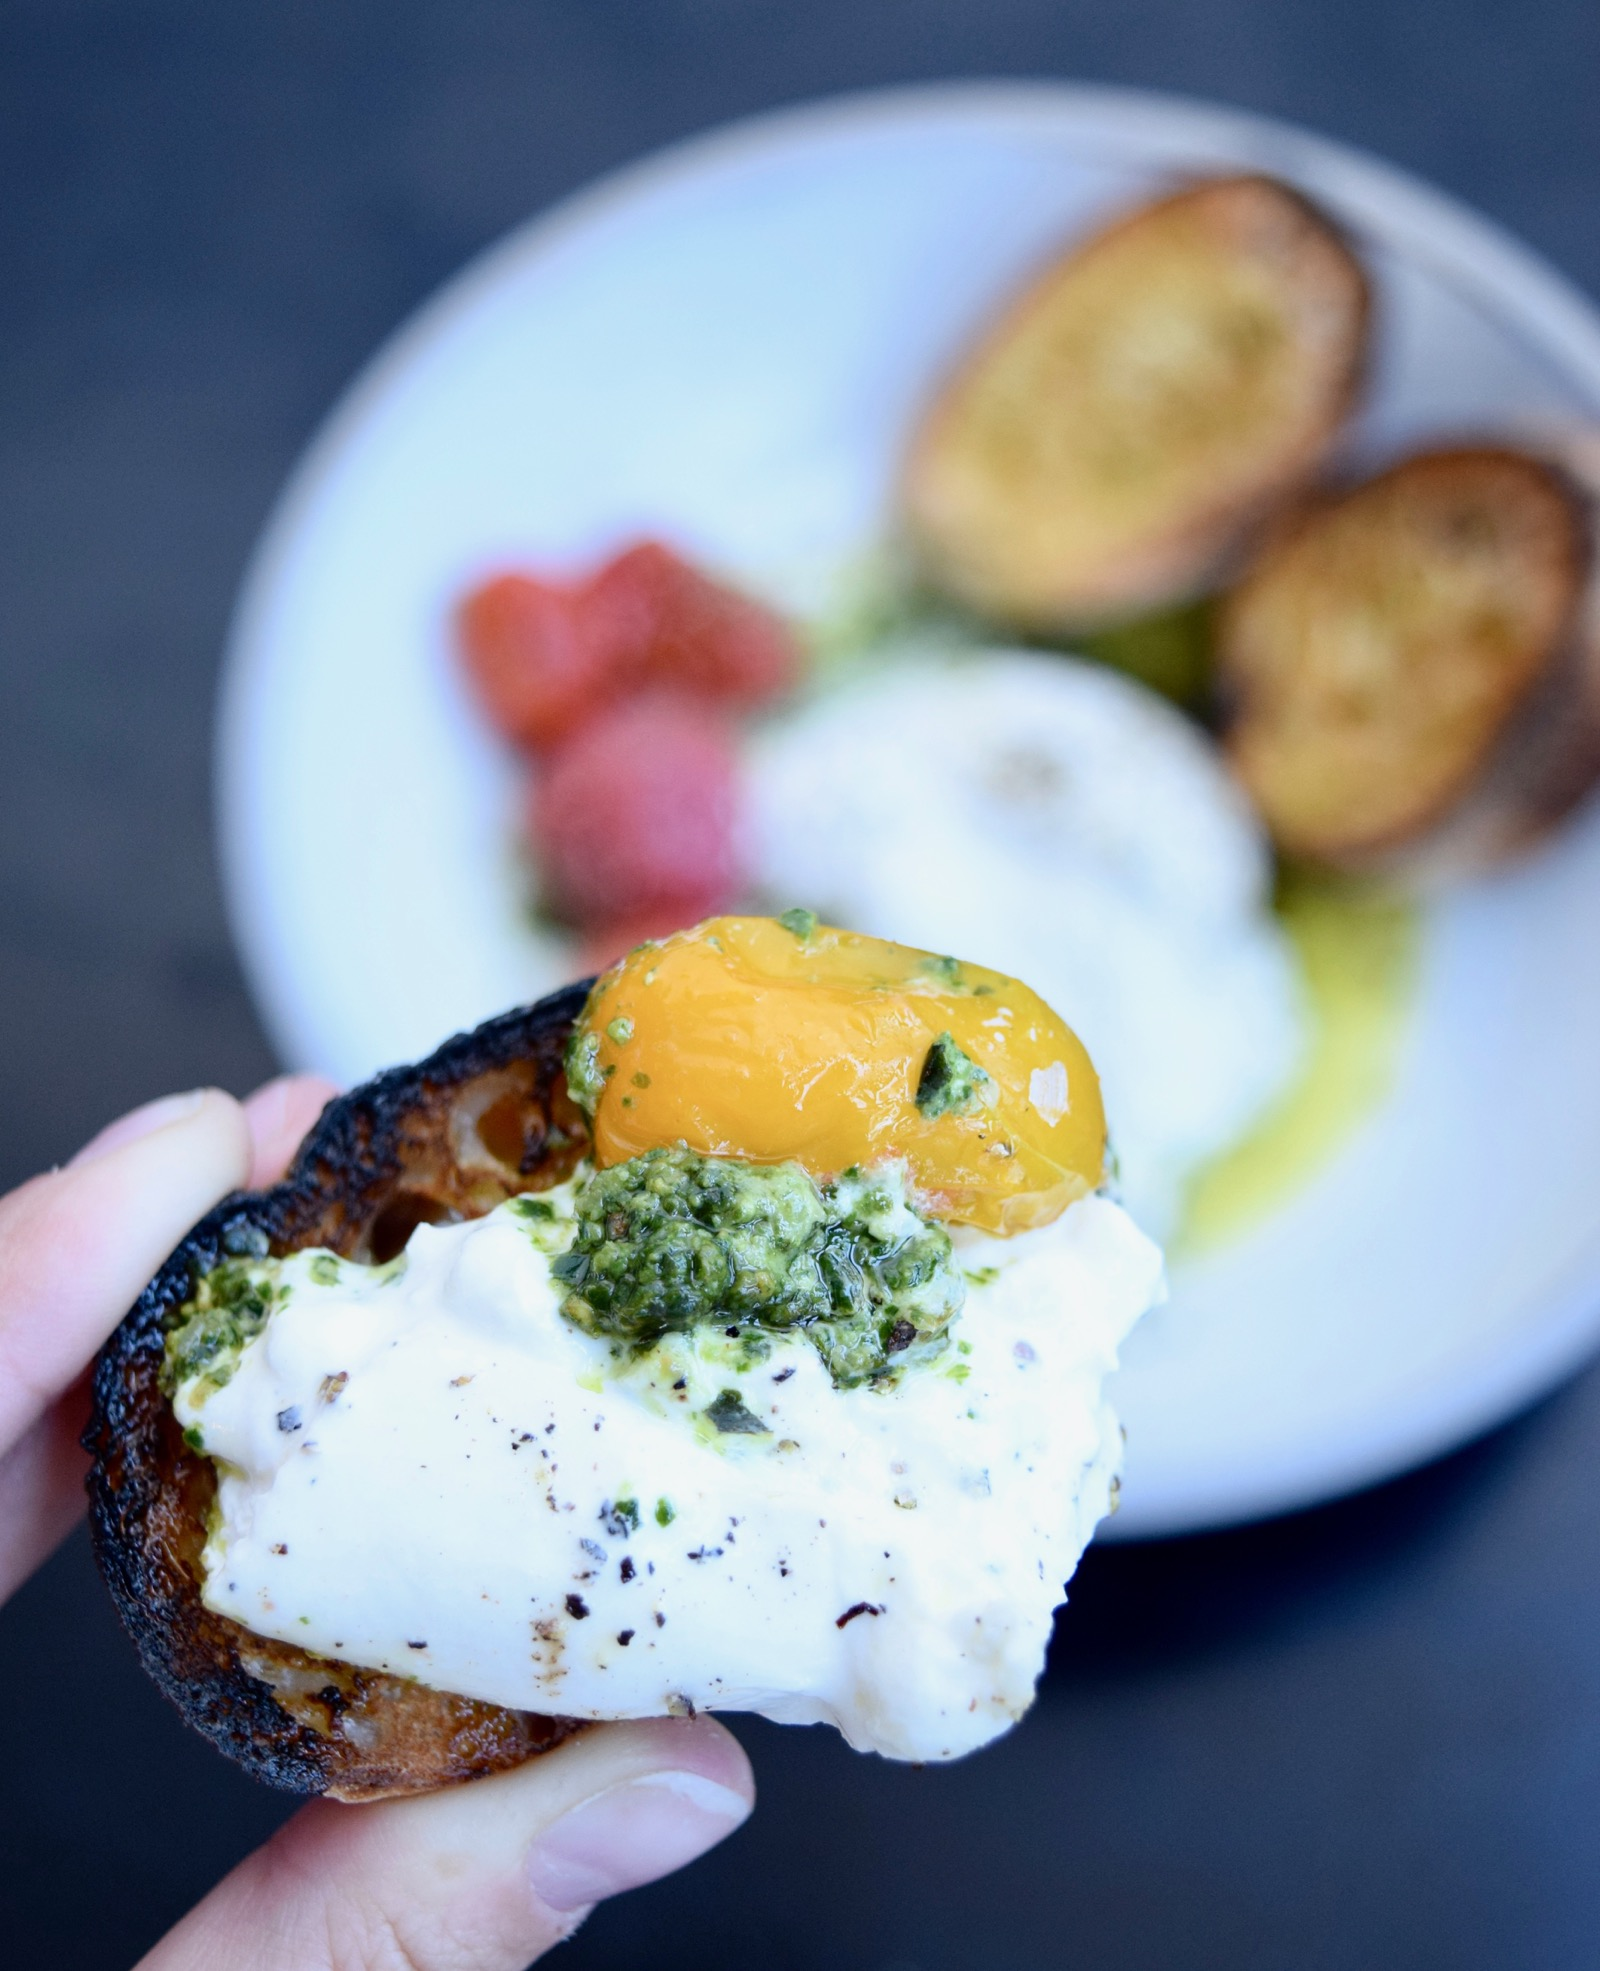 Best Burrata in Los Angeles